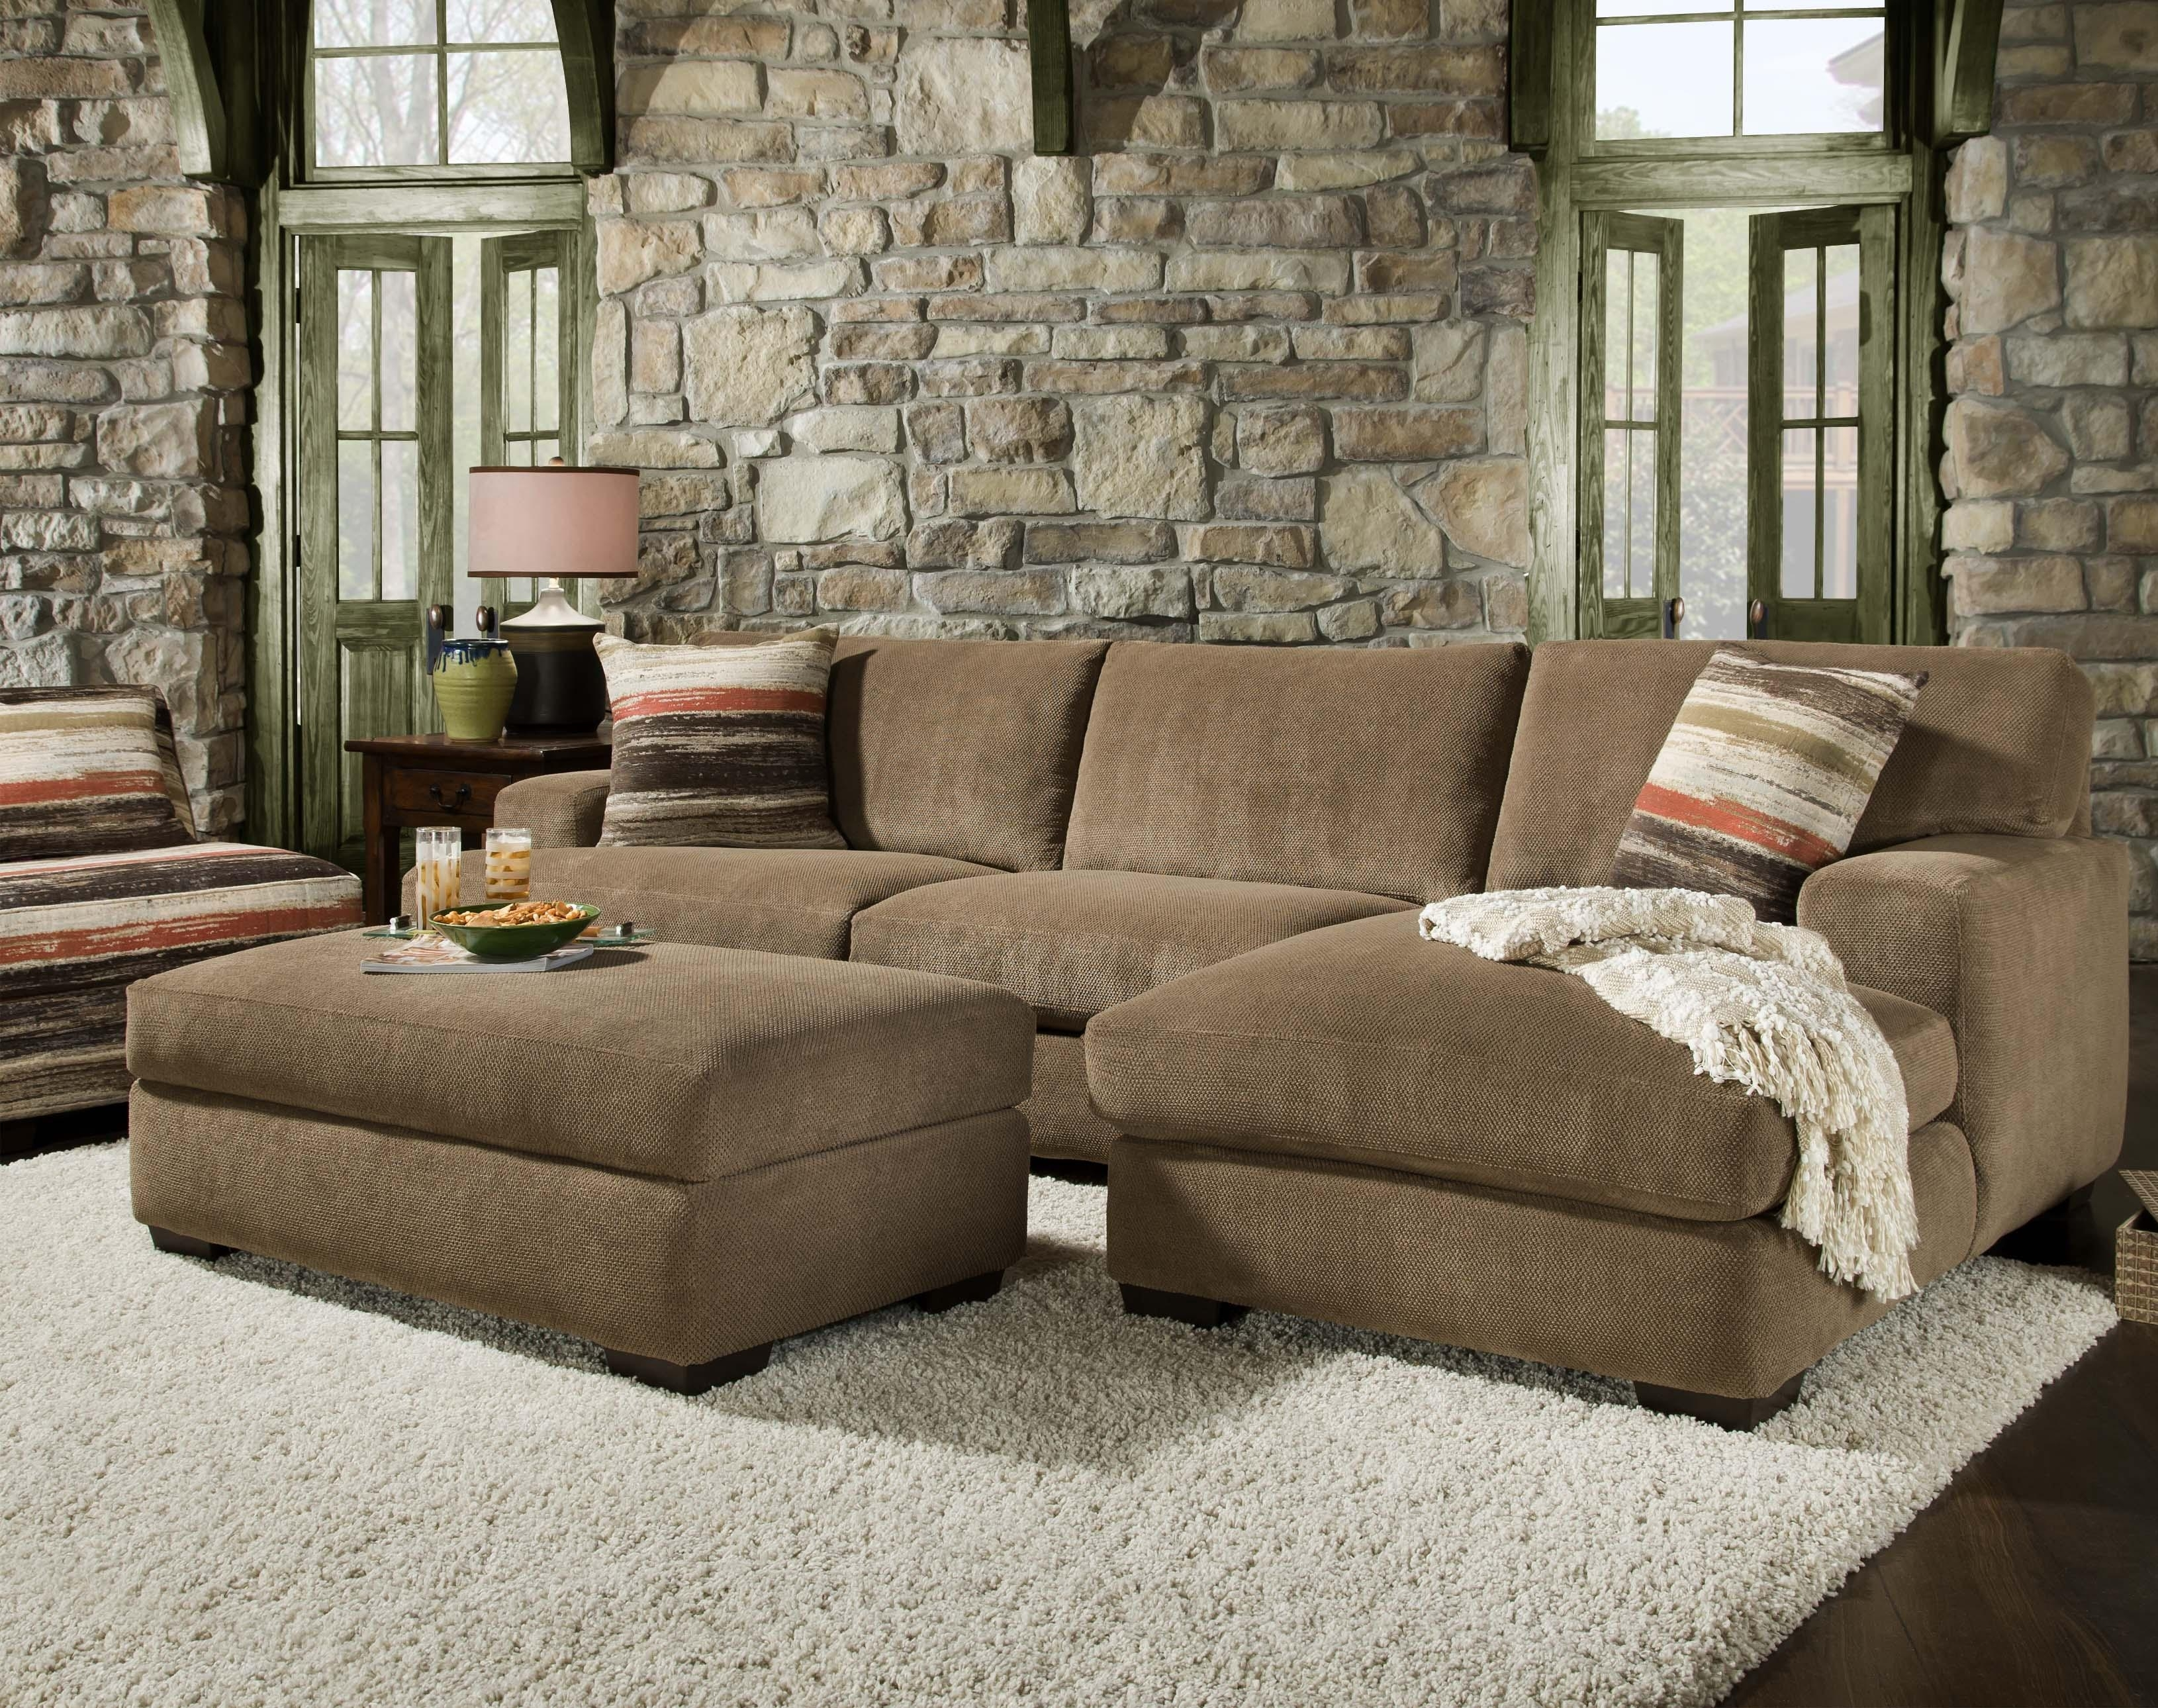 48B0 Small Sectional With Chaisecorinthian | Wolf Furniture inside Small Sectional Sofas With Chaise and Ottoman